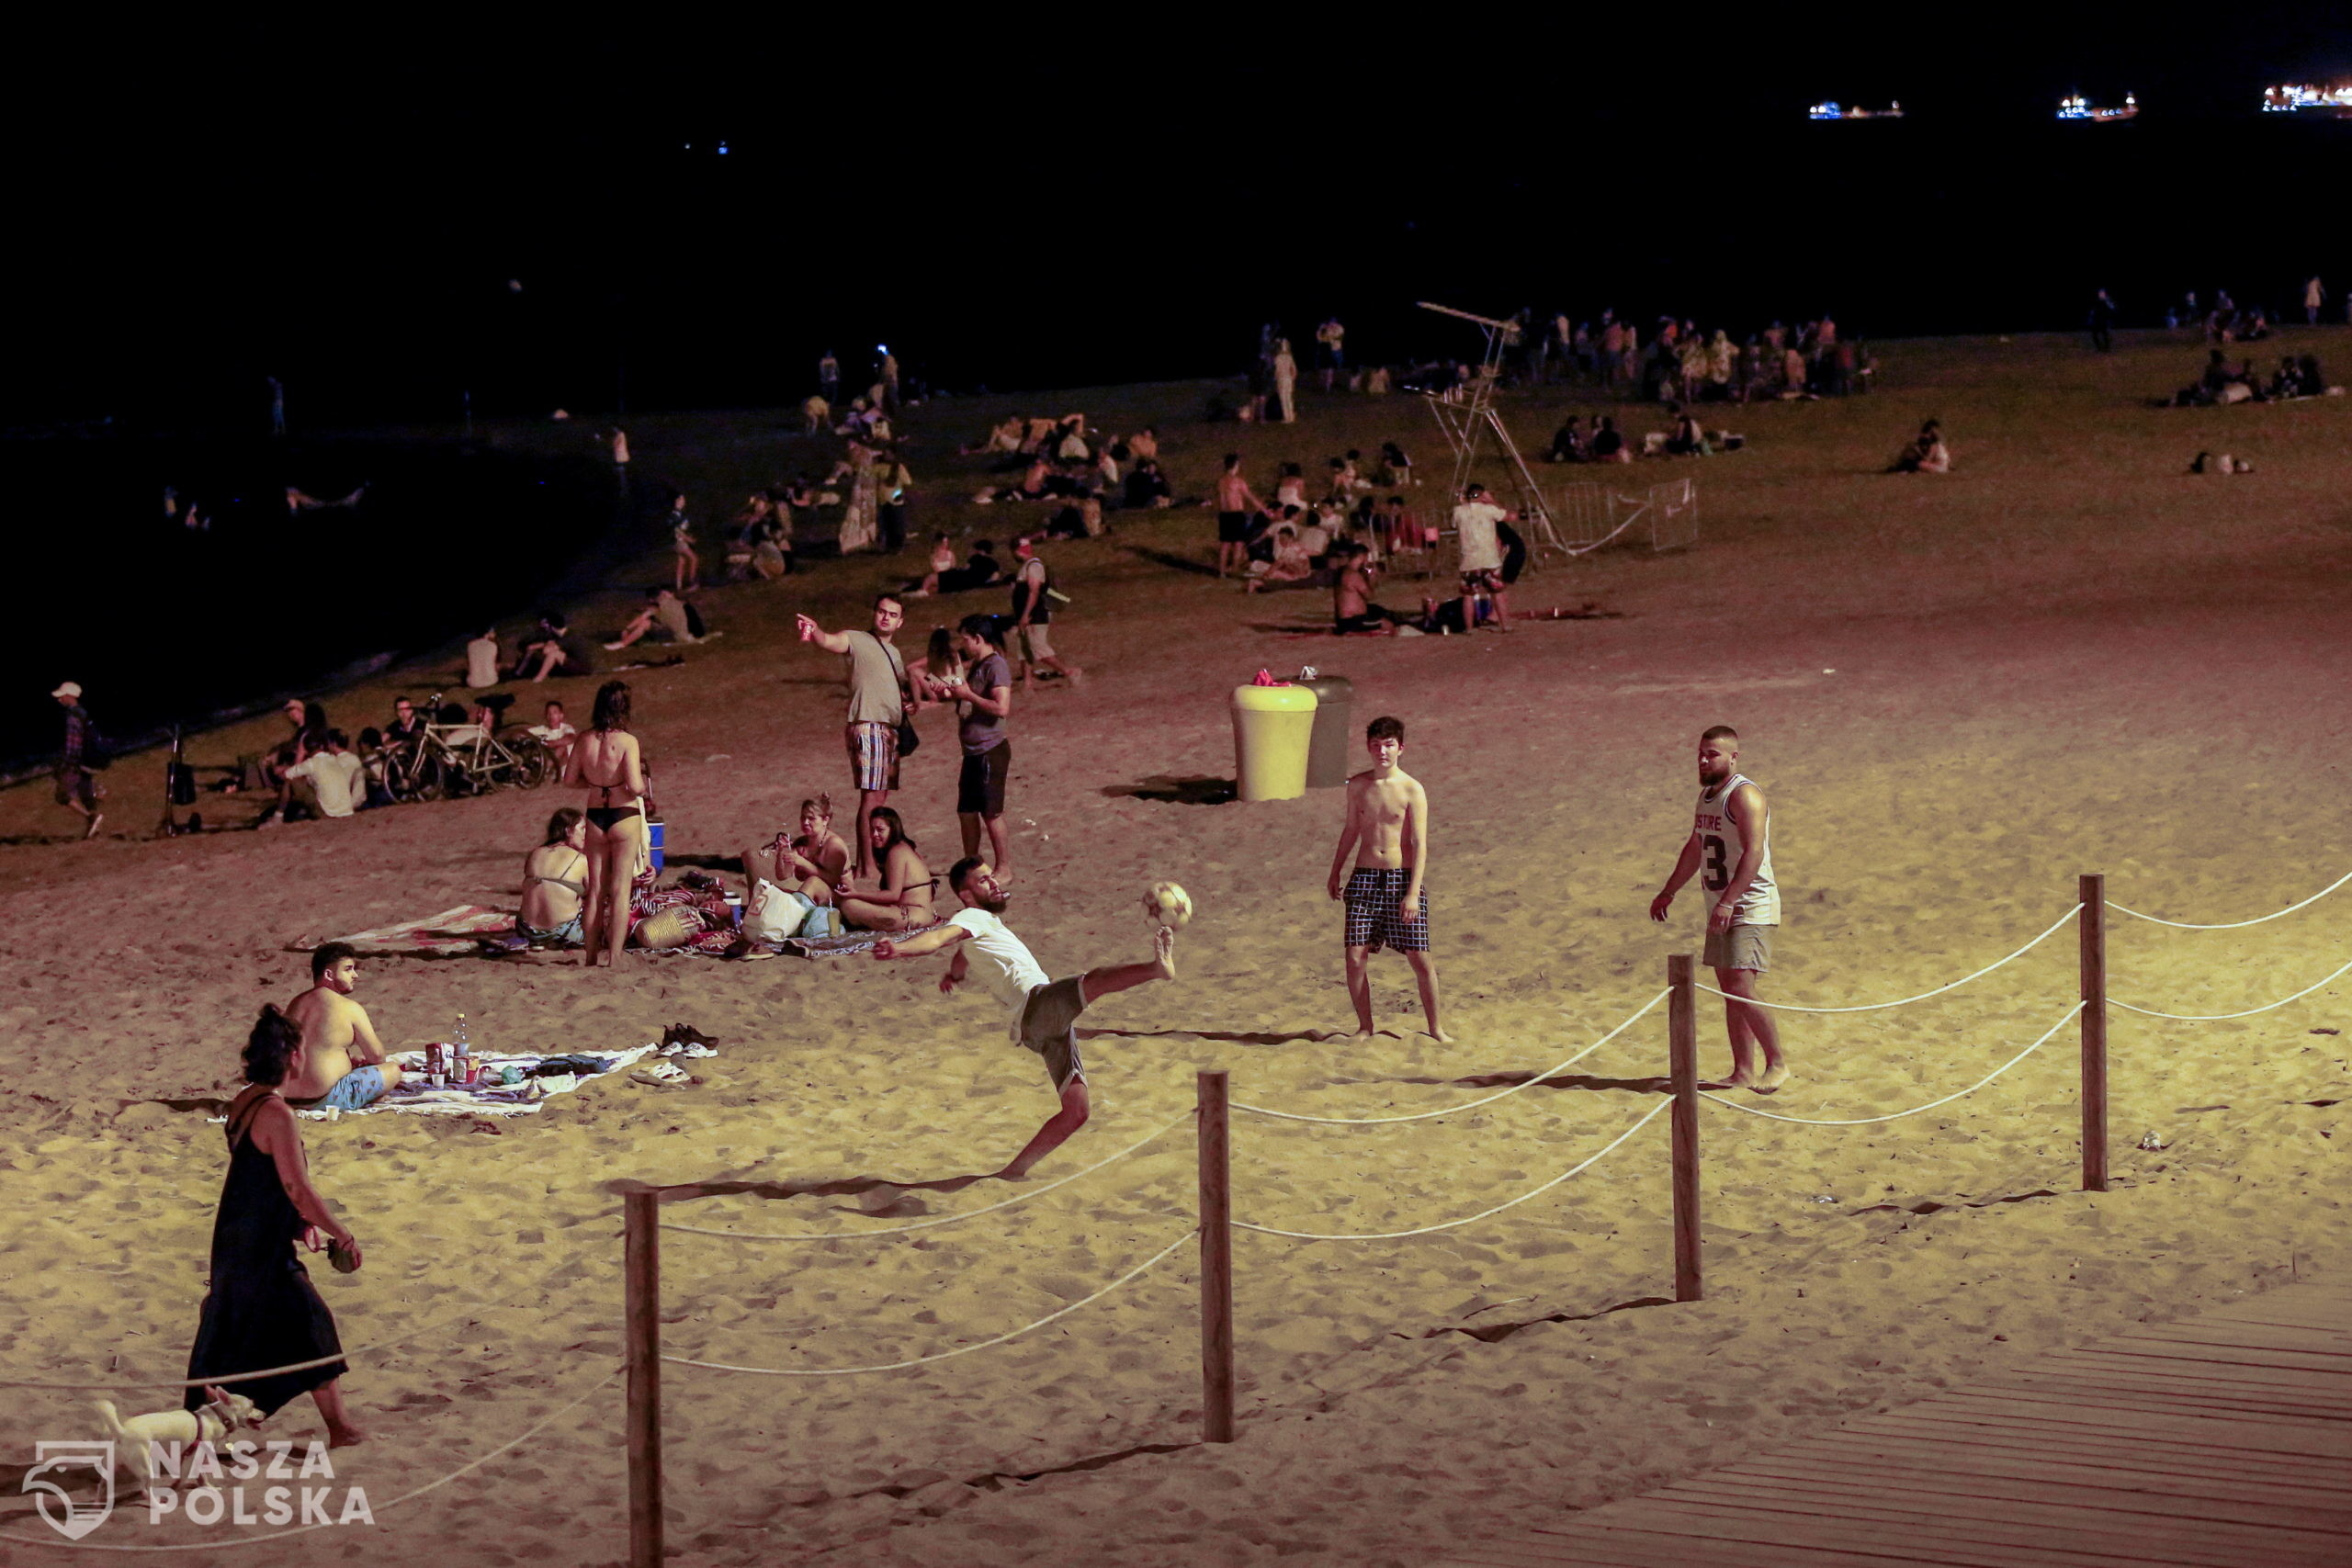 epa08566529 Youngsters are seen at the beach in Barcelona, Spain, early 26 July 2020, after night clubs all over the region shut down ordered by the Catalan Government. A new outbreak in various parts of Catalonia with a high number of young people testing pisitive, has taken the Government to take this decision that night Clubs have already announced they will be talking to court as they assure this measure is not 'justified'.  EPA/Quique Garcia  Dostawca: PAP/EPA.